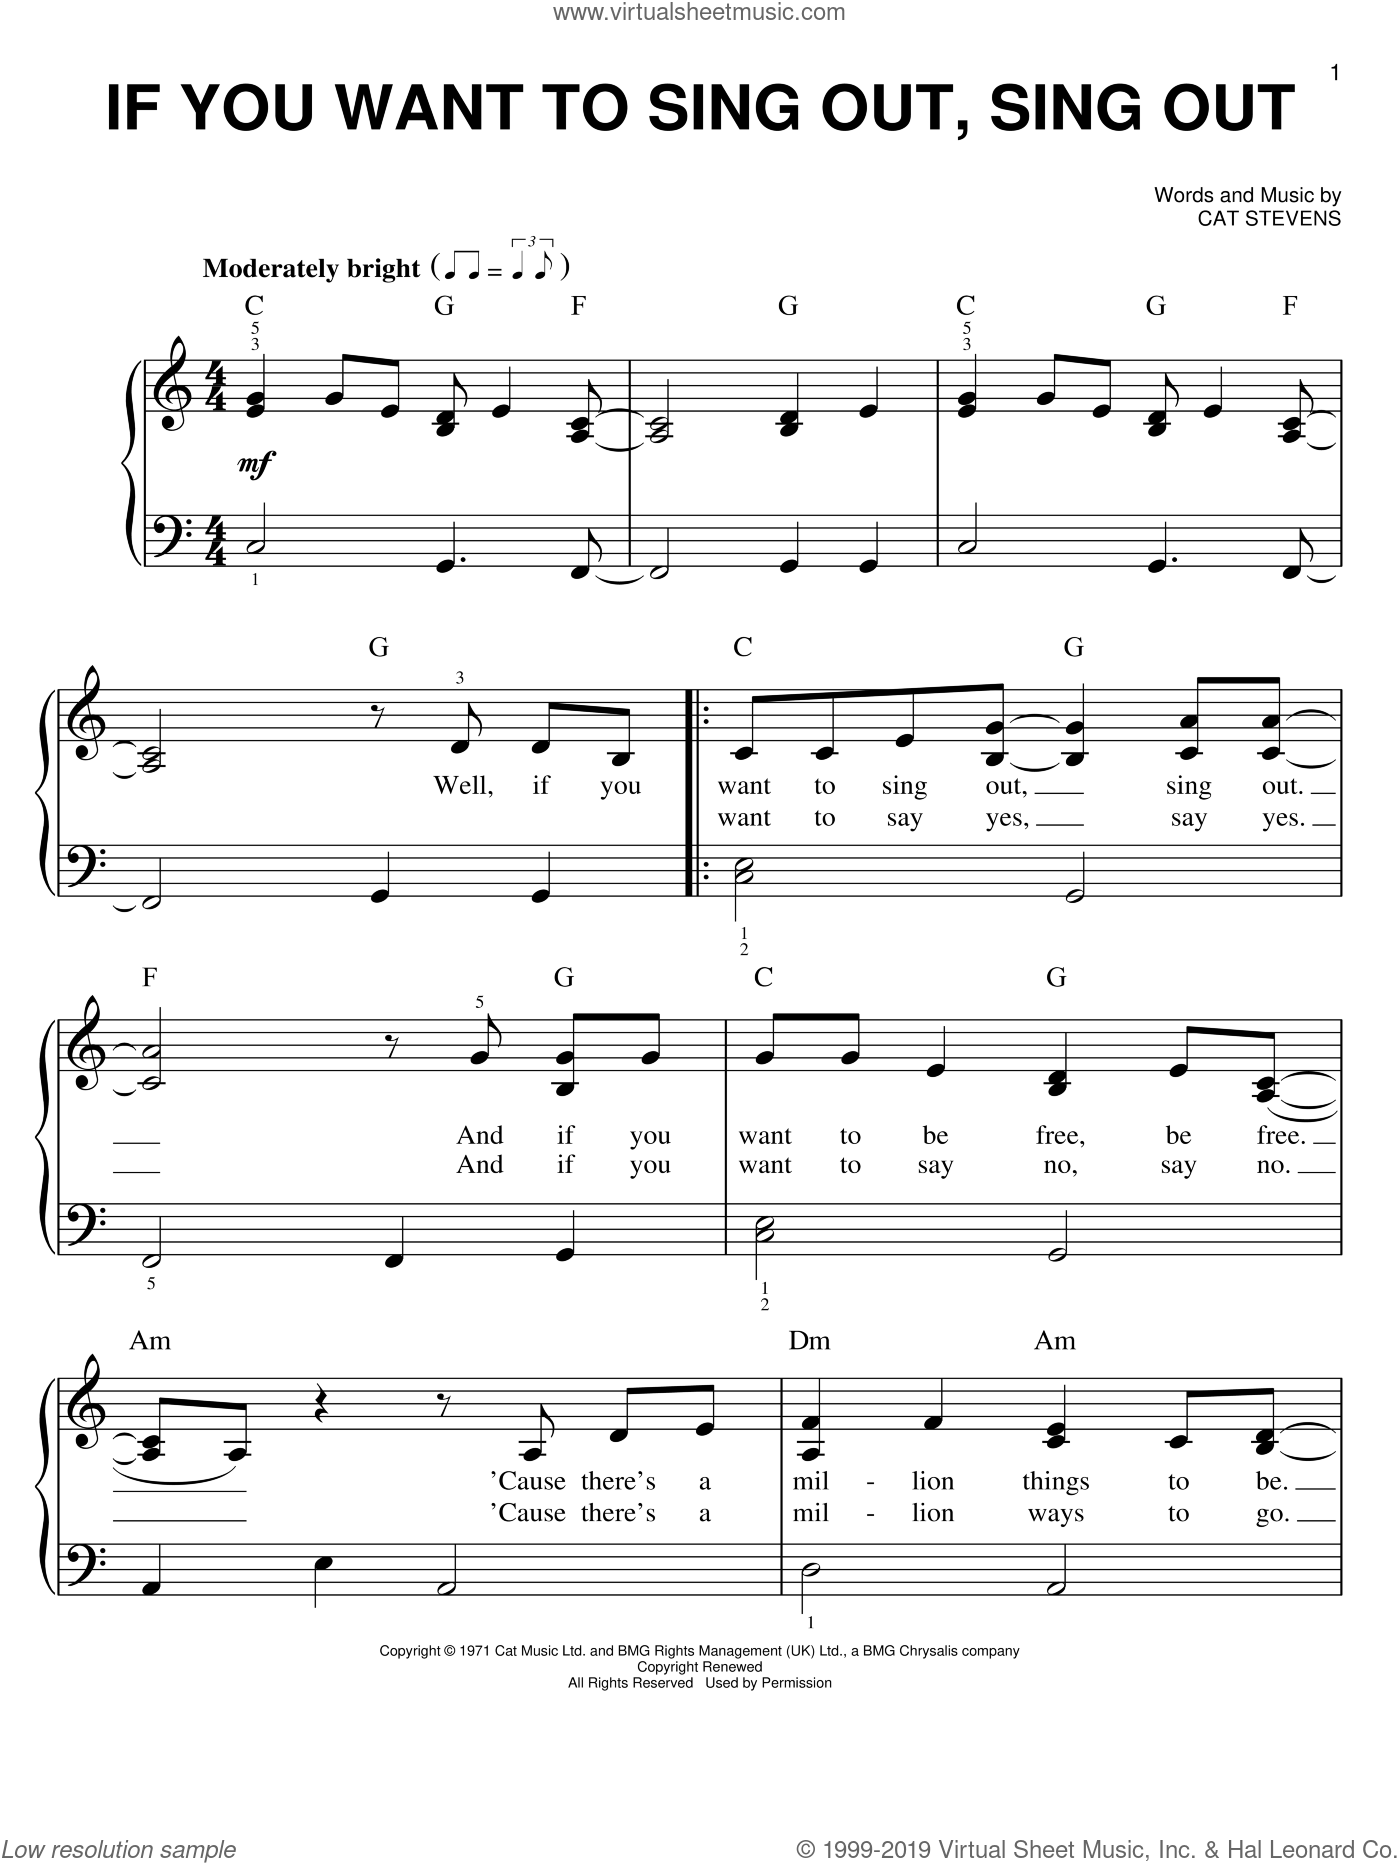 If You Want To Sing Out, Sing Out sheet music for piano solo by Cat Stevens. Score Image Preview.